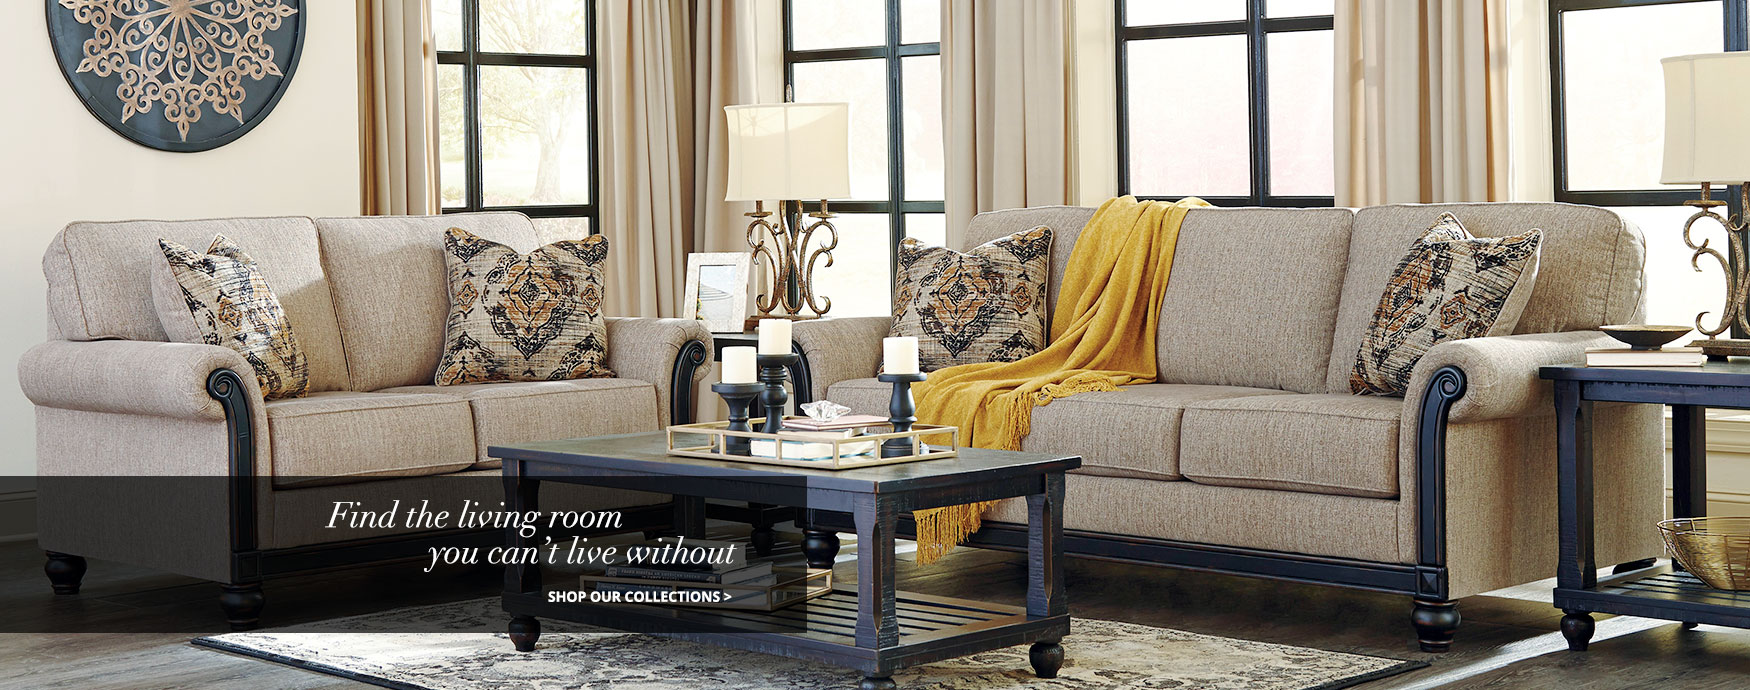 Model home furniture sale pittsburgh home decor ideas Model home furniture and accessories